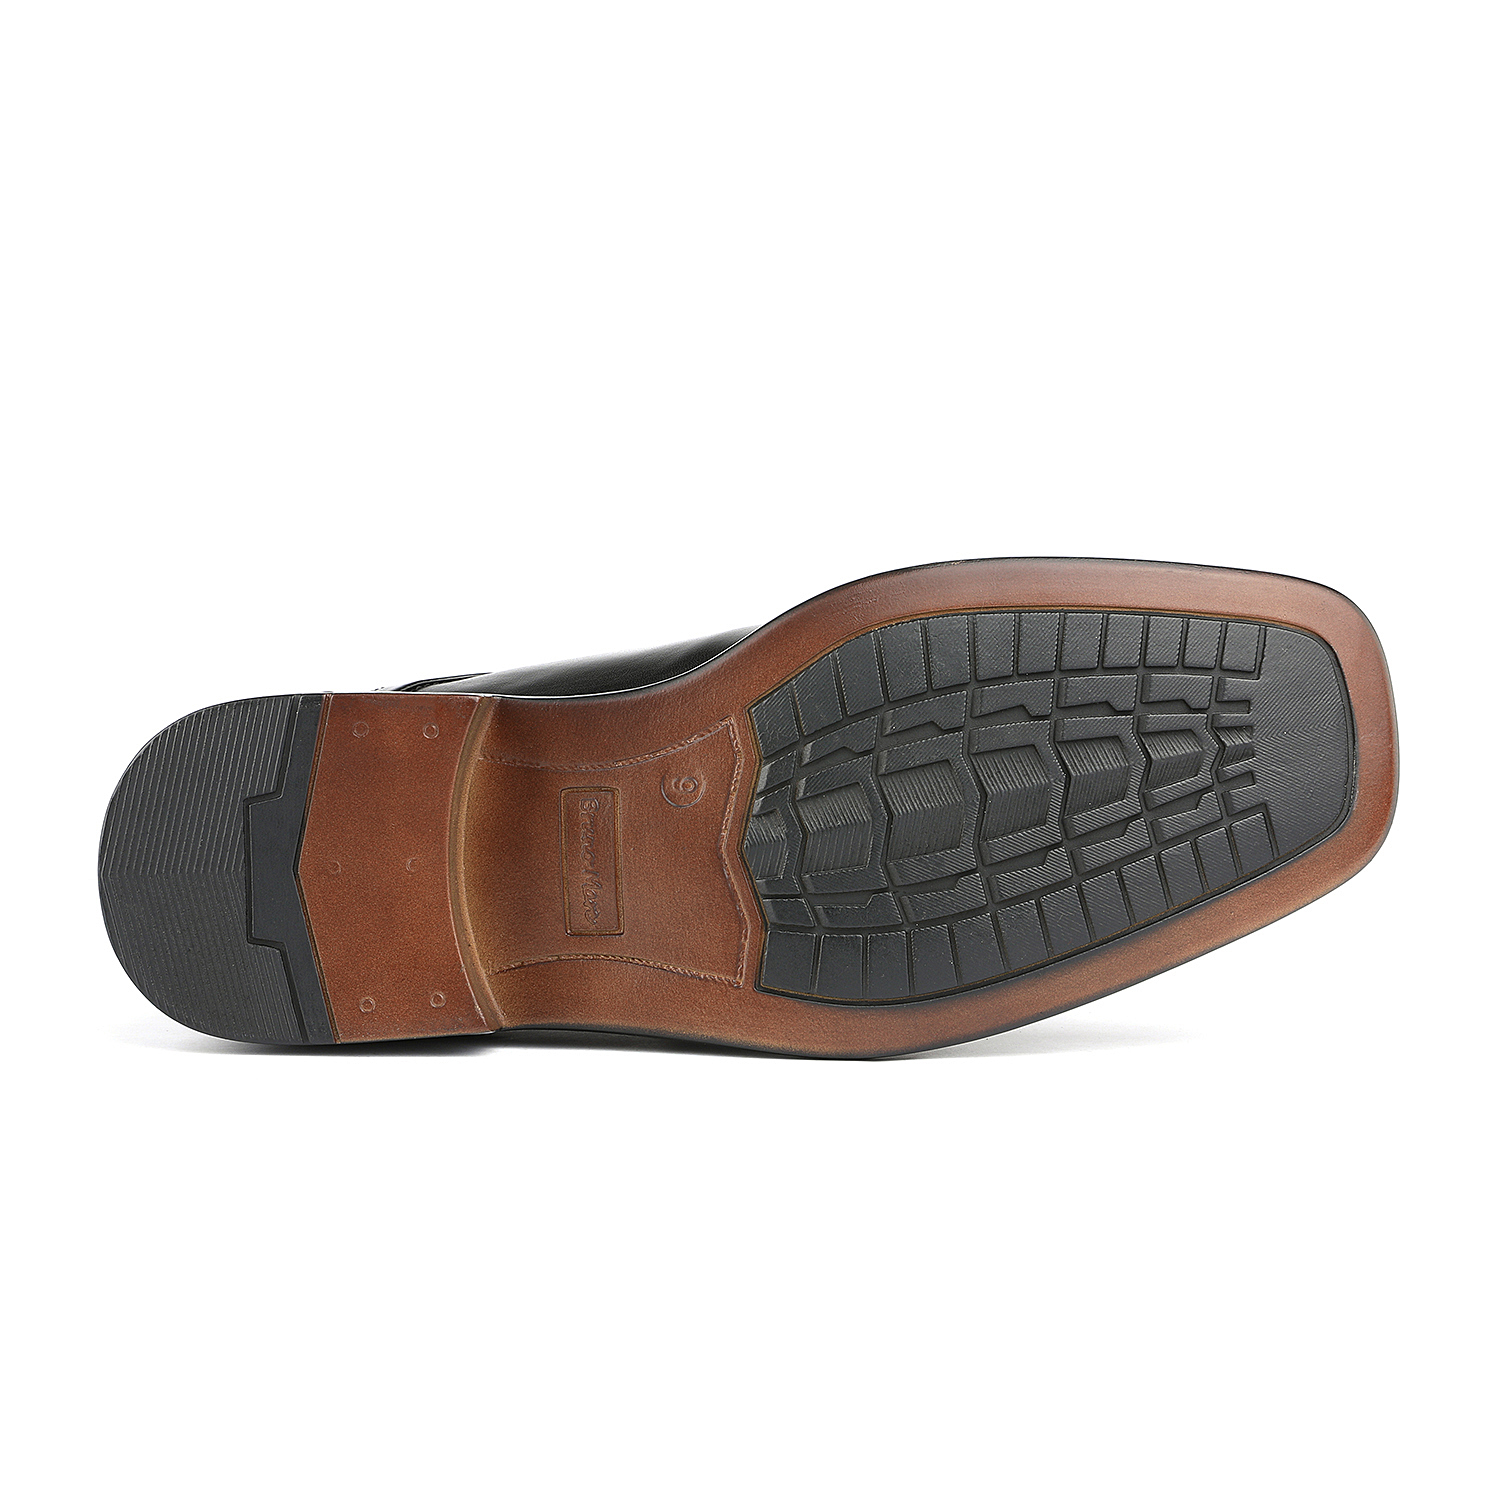 BRUNO-MARC-Men-STATE-Formal-Square-Toe-Leather-Lined-Slip-On-Dress-Loafers-Shoes thumbnail 23